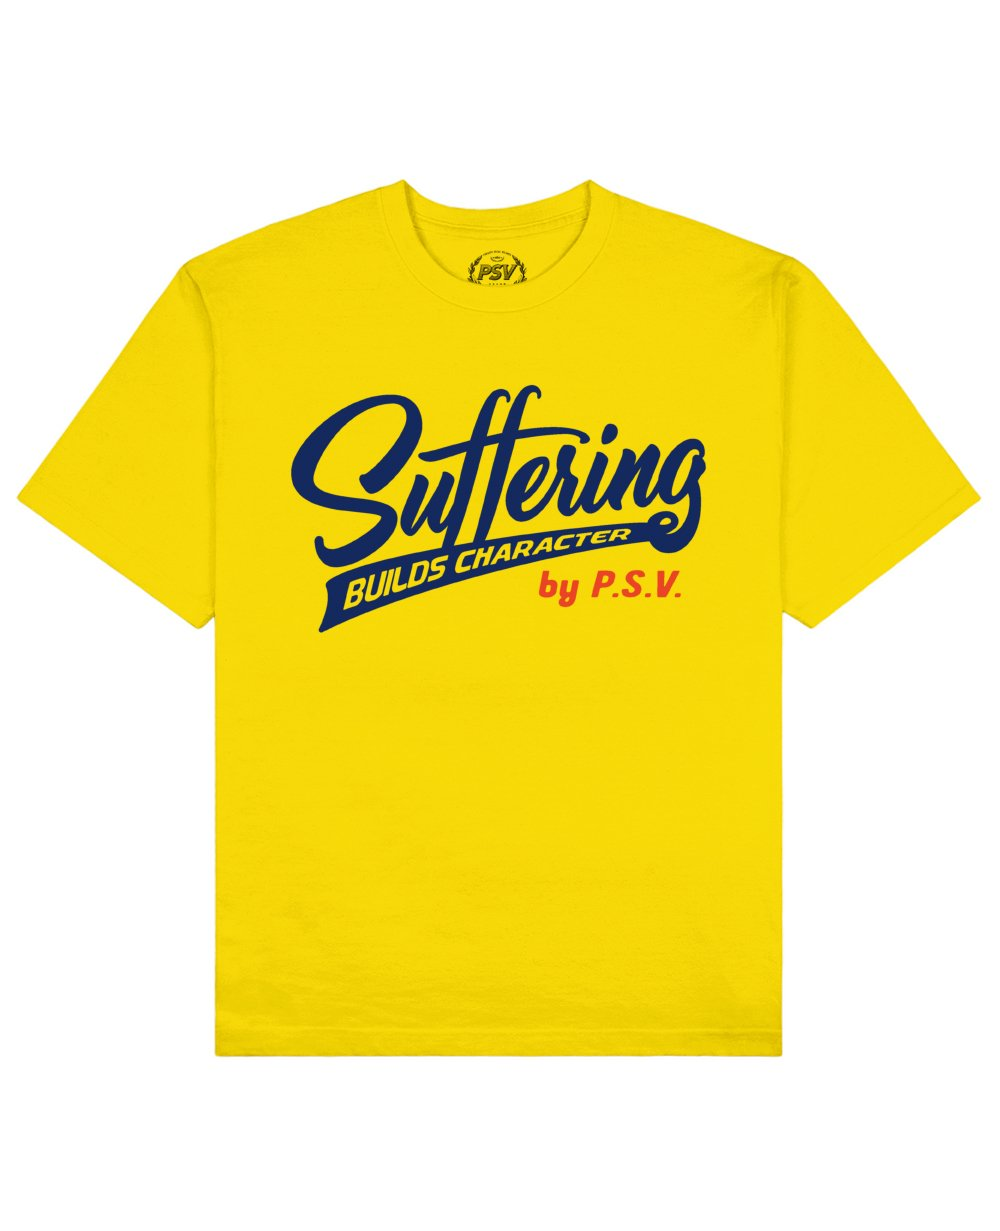 Suffering Builds Character Print T-Shirt in Yellow - T-Shirts - PSV - BRANMA